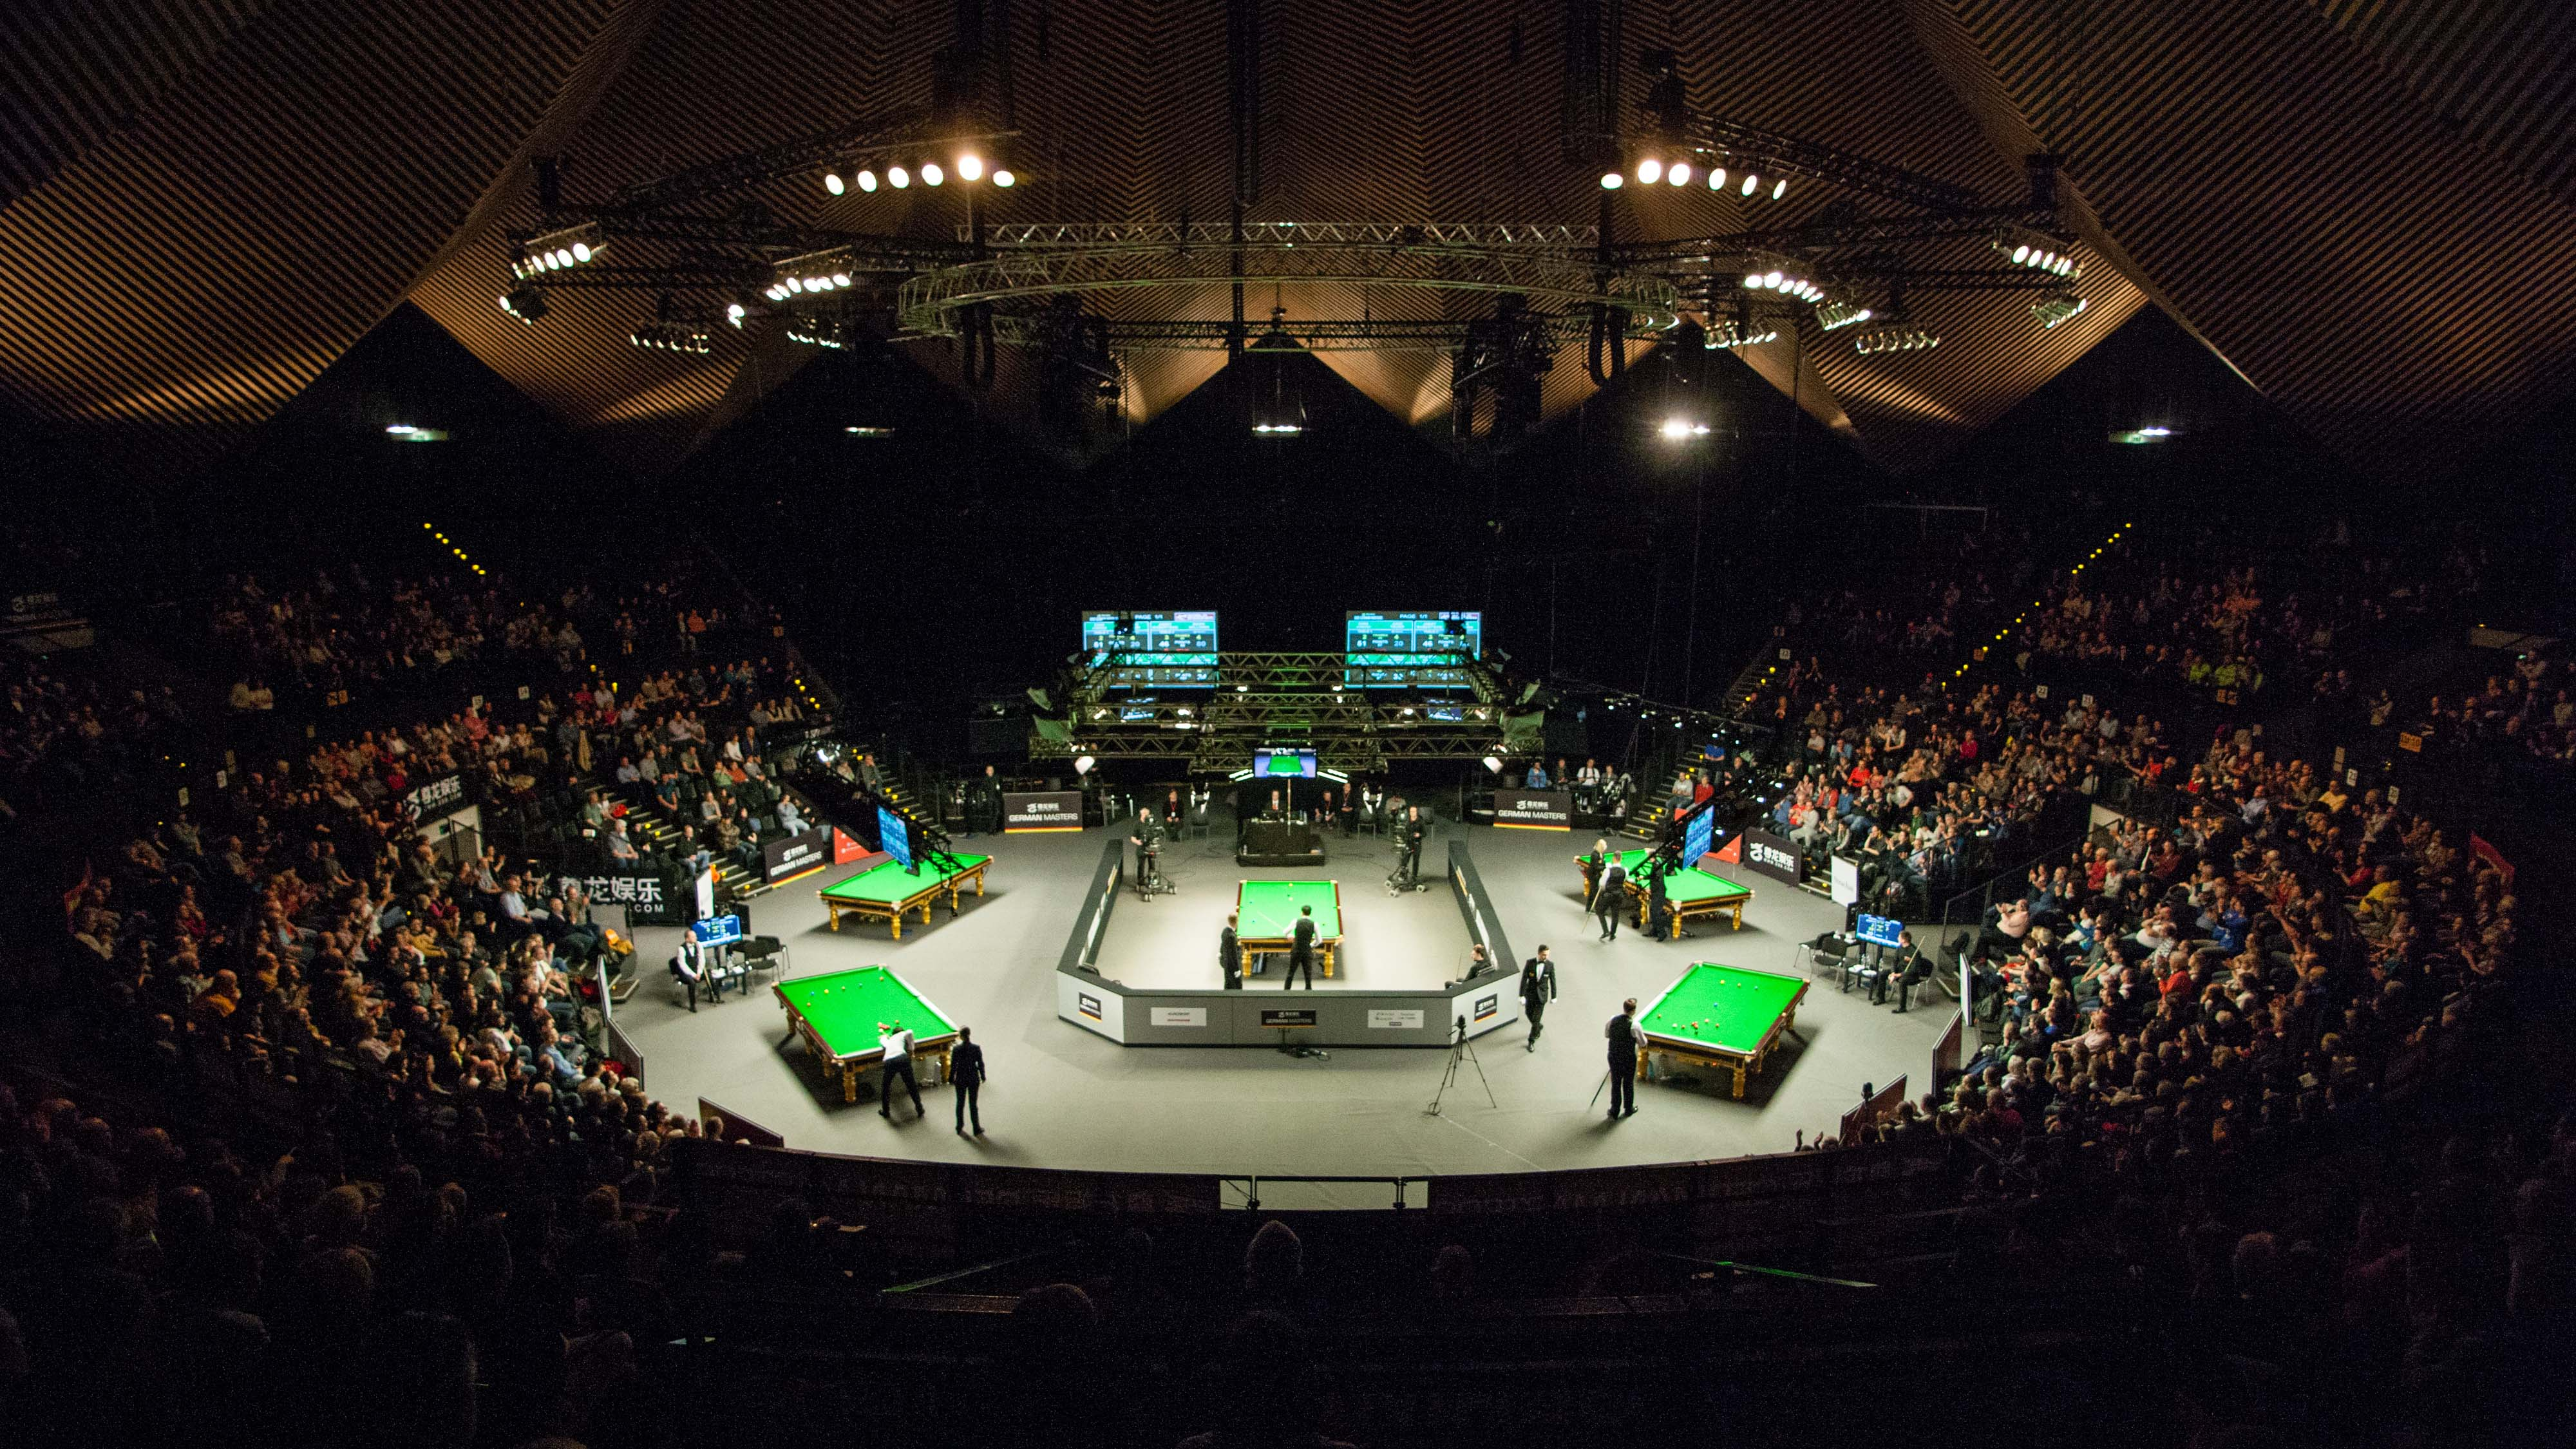 Wss Berlin German Duo Aim To Become Trailblazers World Snooker